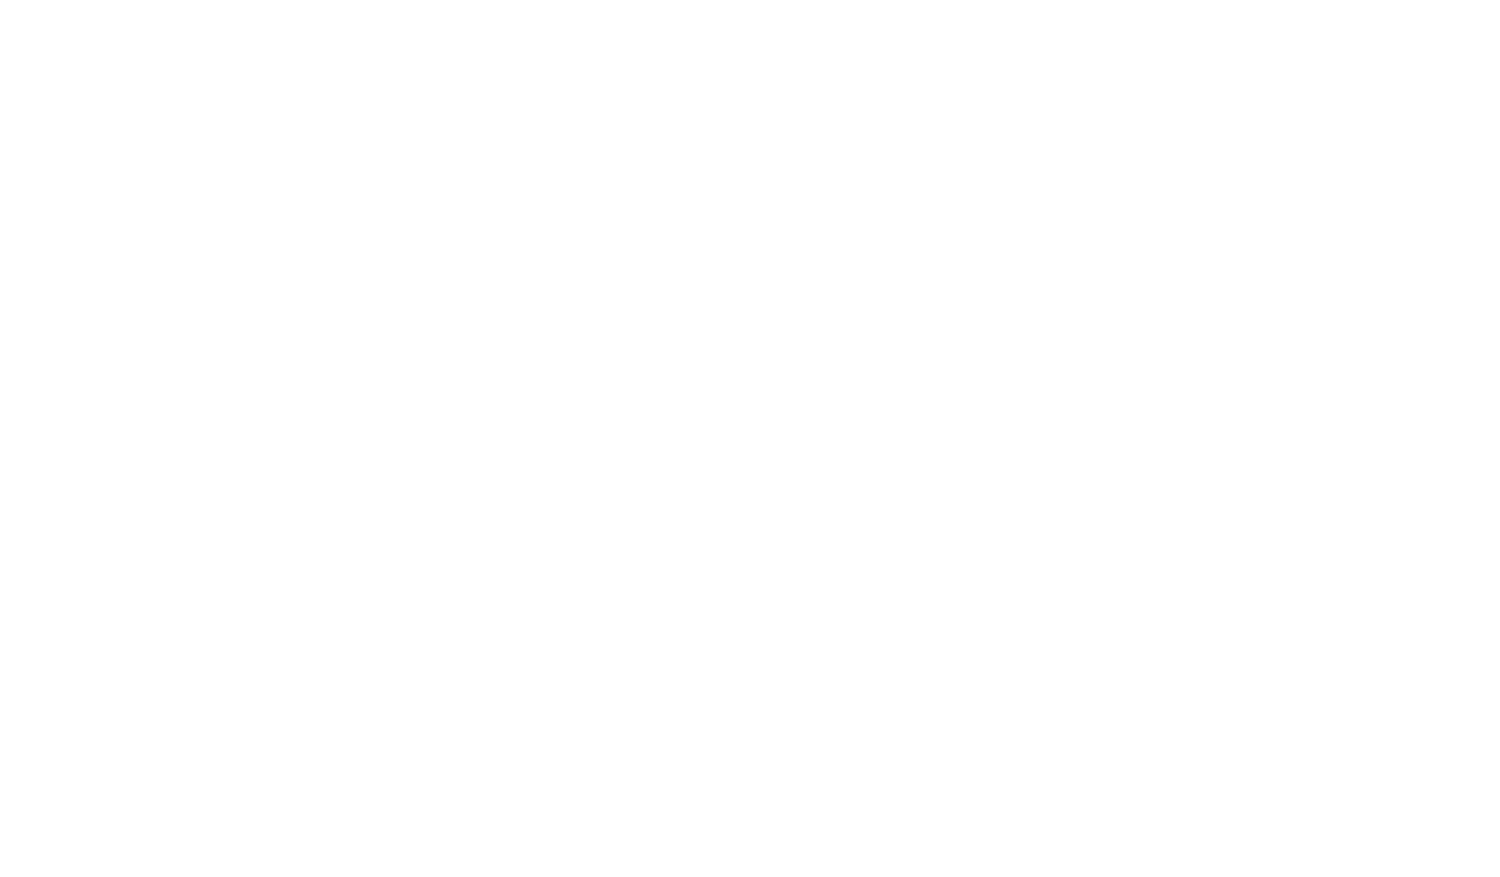 Ferdinand the Magnificent